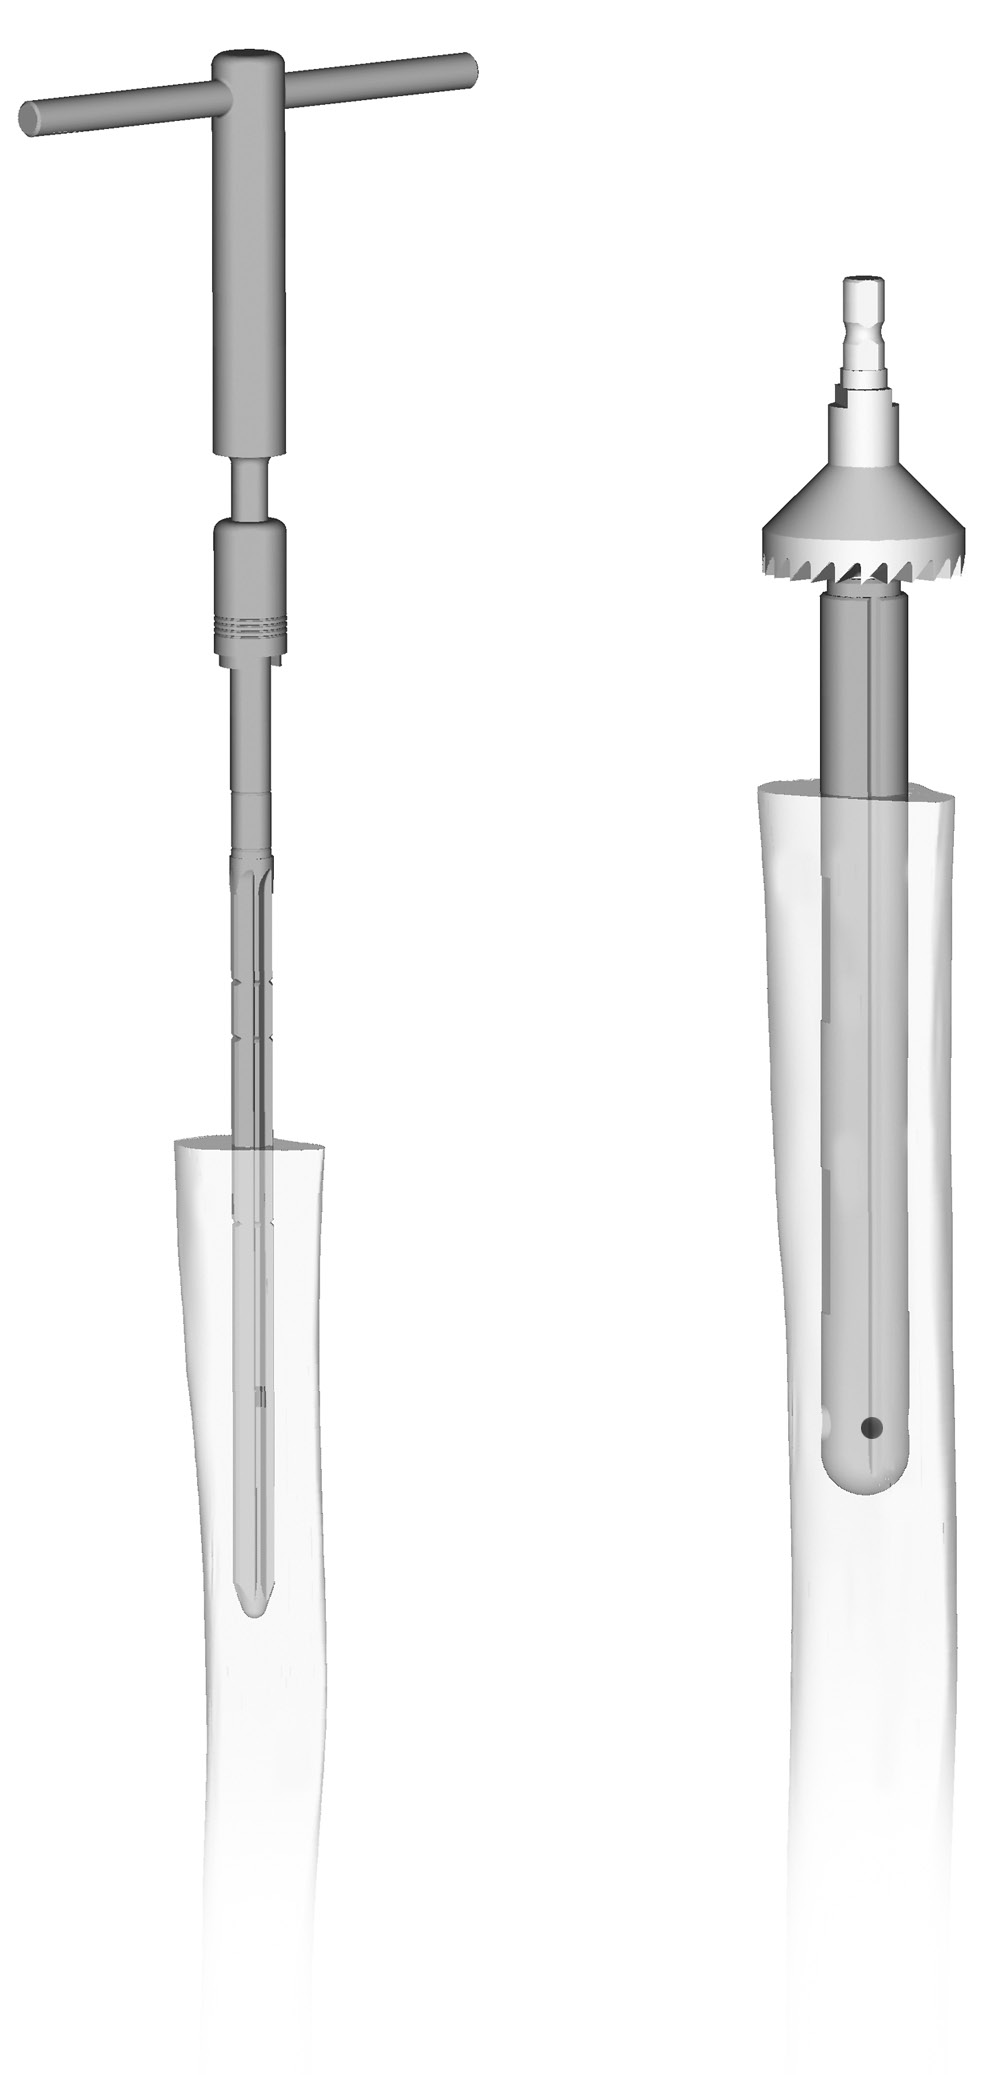 24 Zimmer MOST Options System Surgical Technique Tibial Preparation Straight Stem Preparation The 190mm straight stem options are shown in Tables 4 and 5.